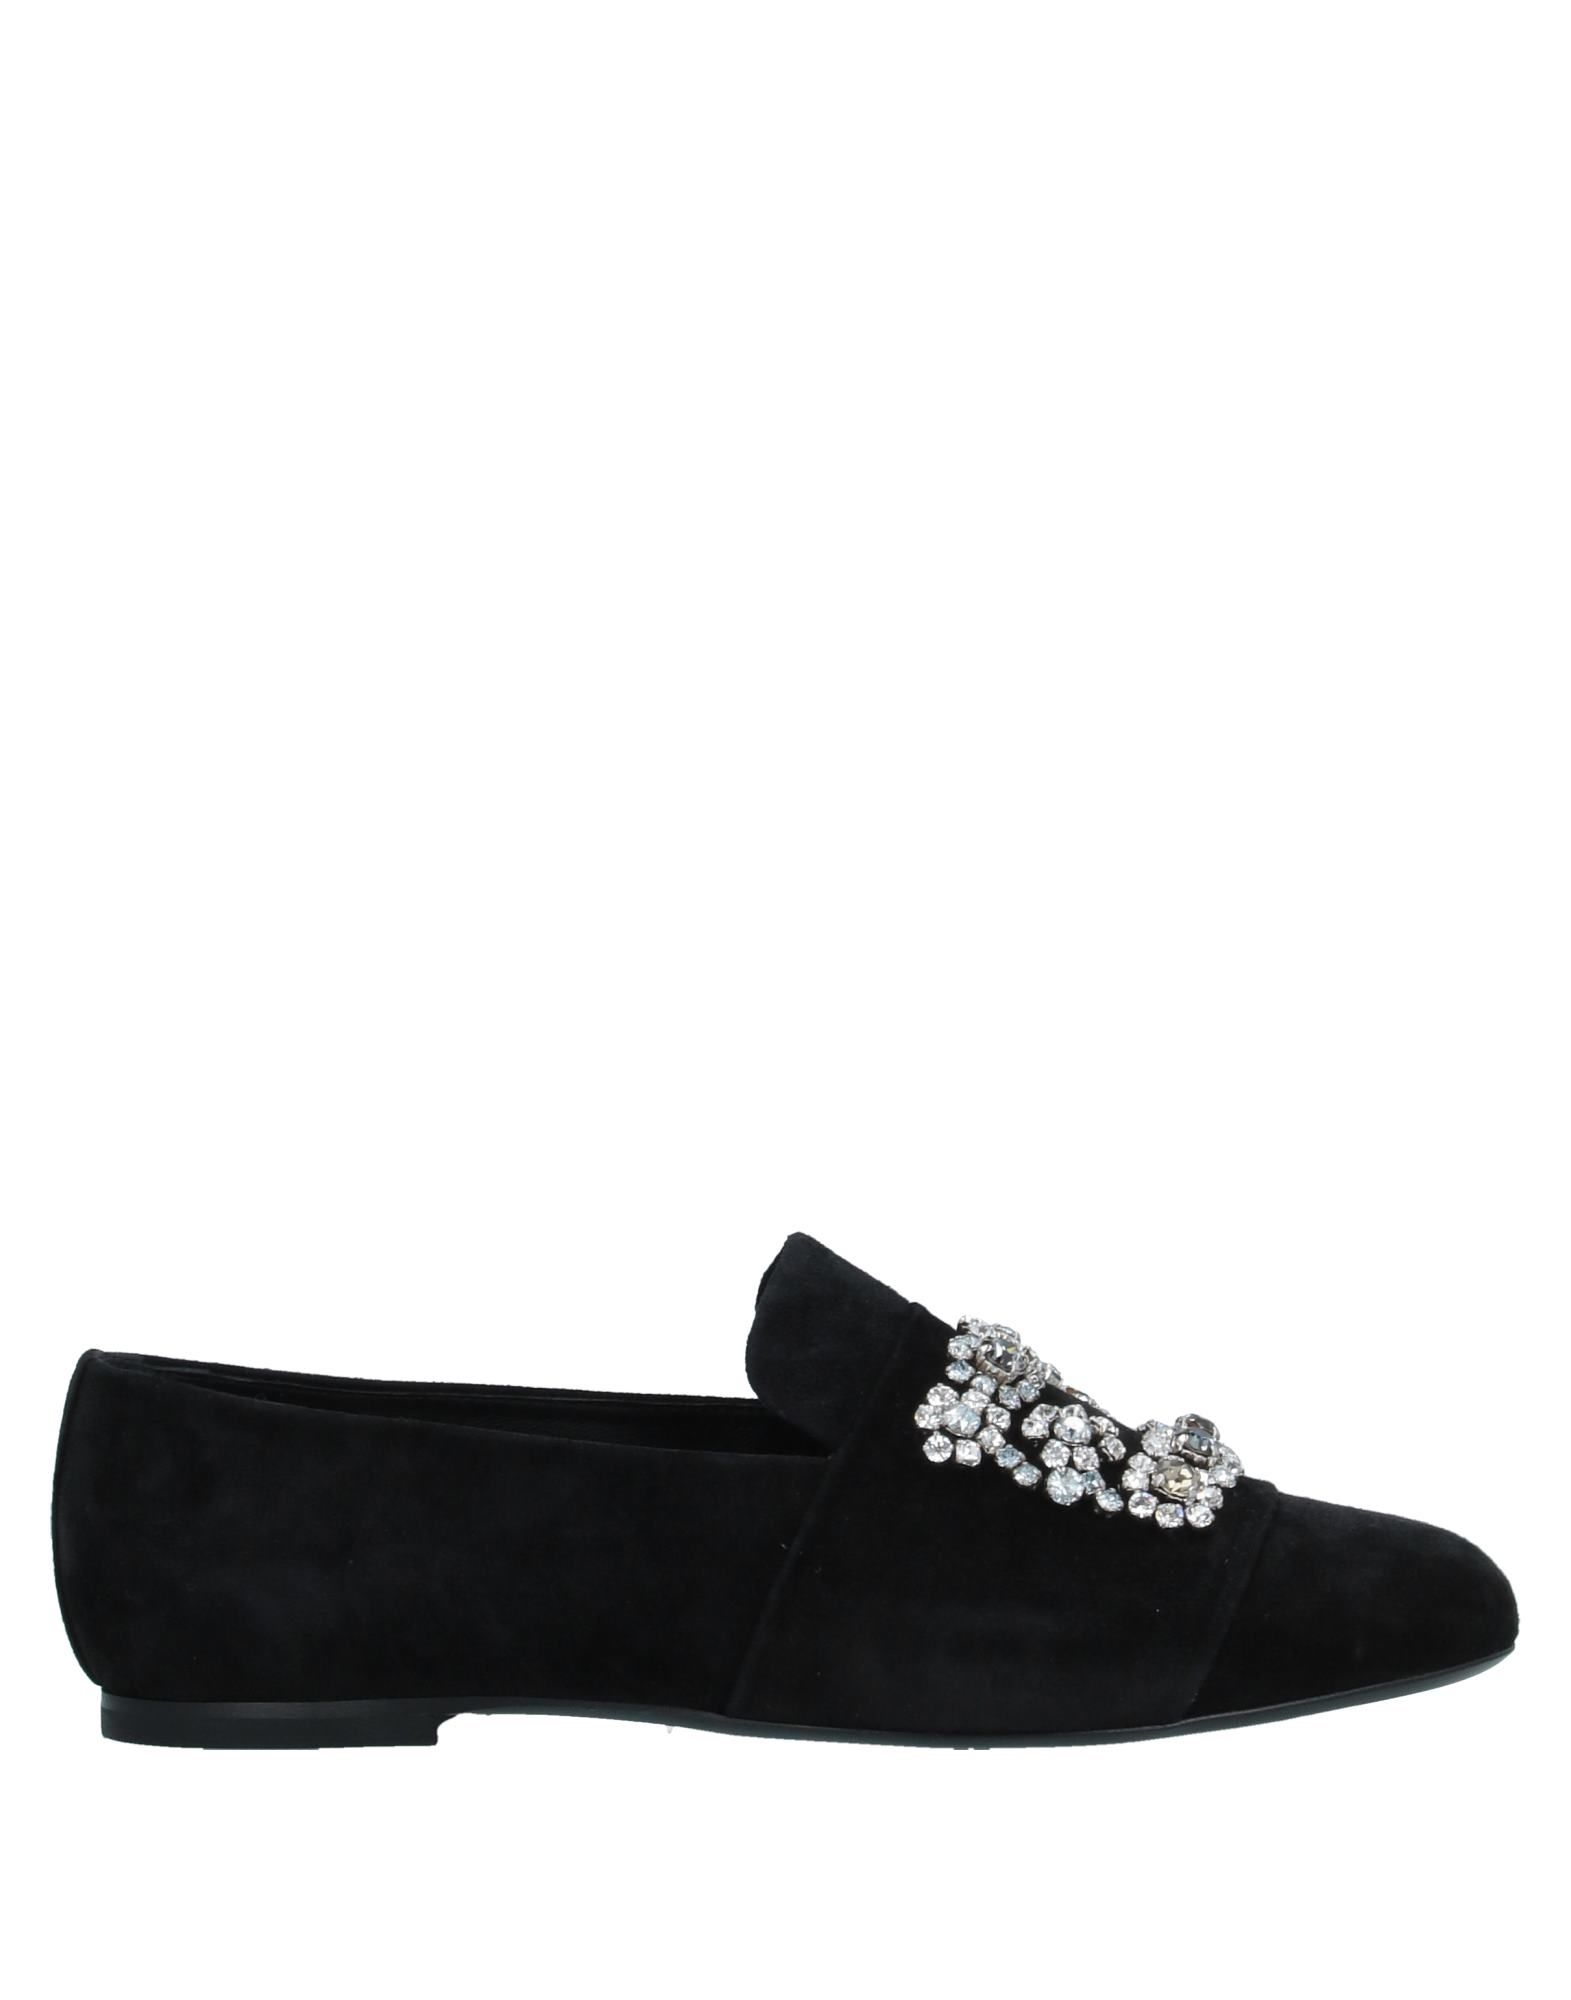 ROGER VIVIER Loafers. leather, suede effect, rhinestones, solid color, round toeline, flat, leather lining, leather sole, contains non-textile parts of animal origin. Soft Leather